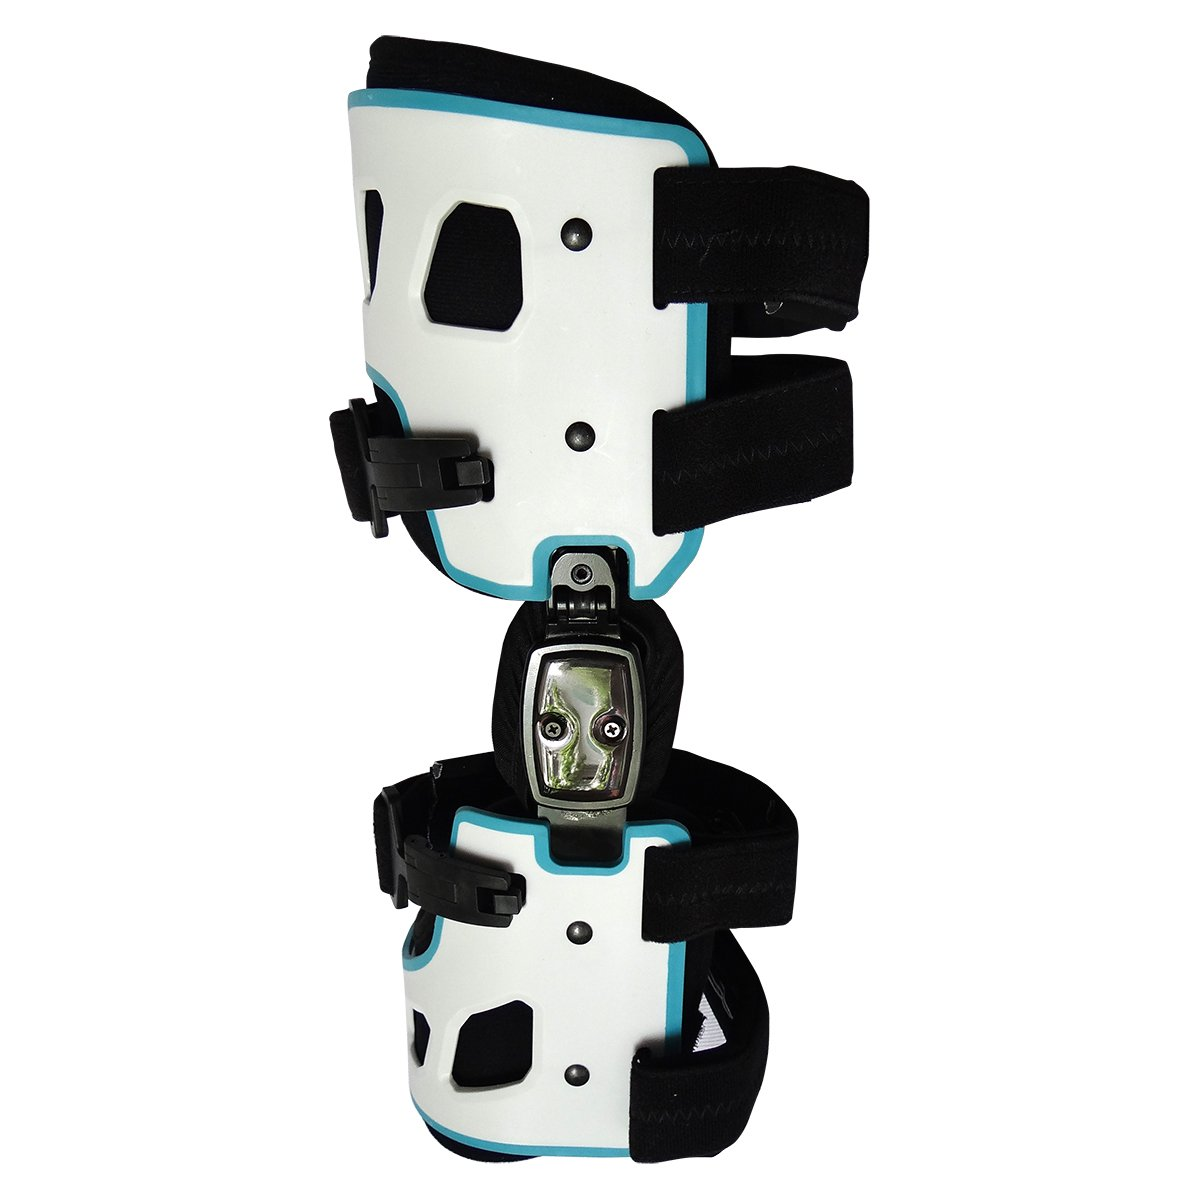 Orthomen OA Unloading Knee Brace for Arthritis, Cartilage Injury, and Bone-On-Bone Pain, Medial - Universal (Right) by Orthomen (Image #3)